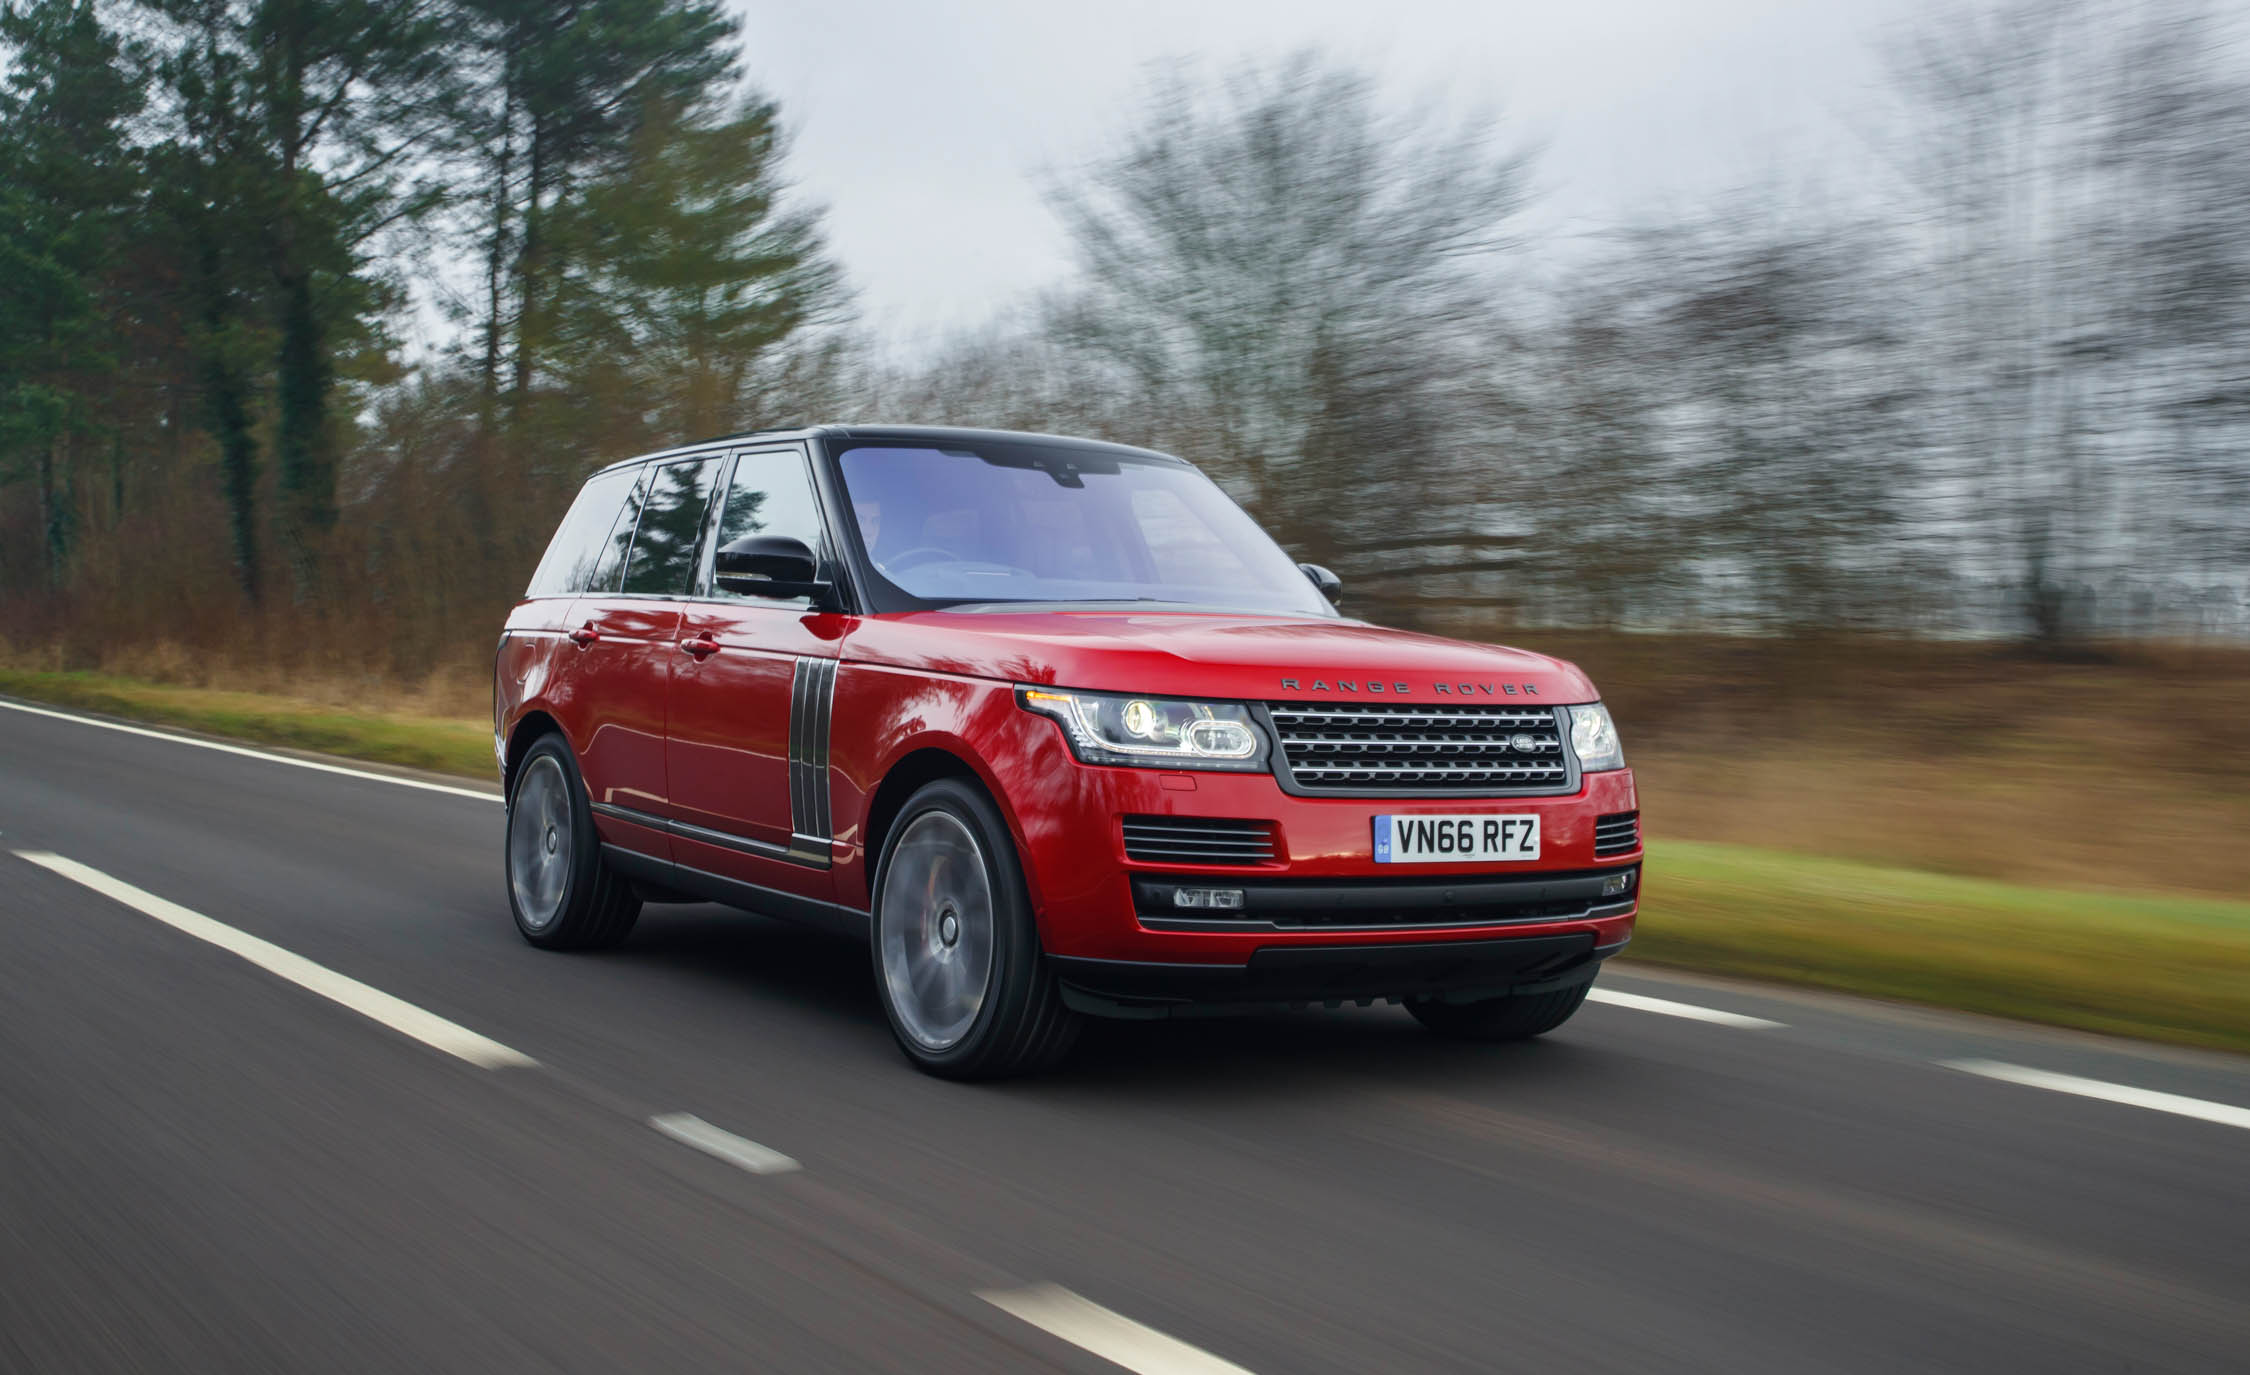 2017 Land Rover Range Rover SVAutobiography Dynamic Test Drive Front And Side View (Photo 16 of 24)